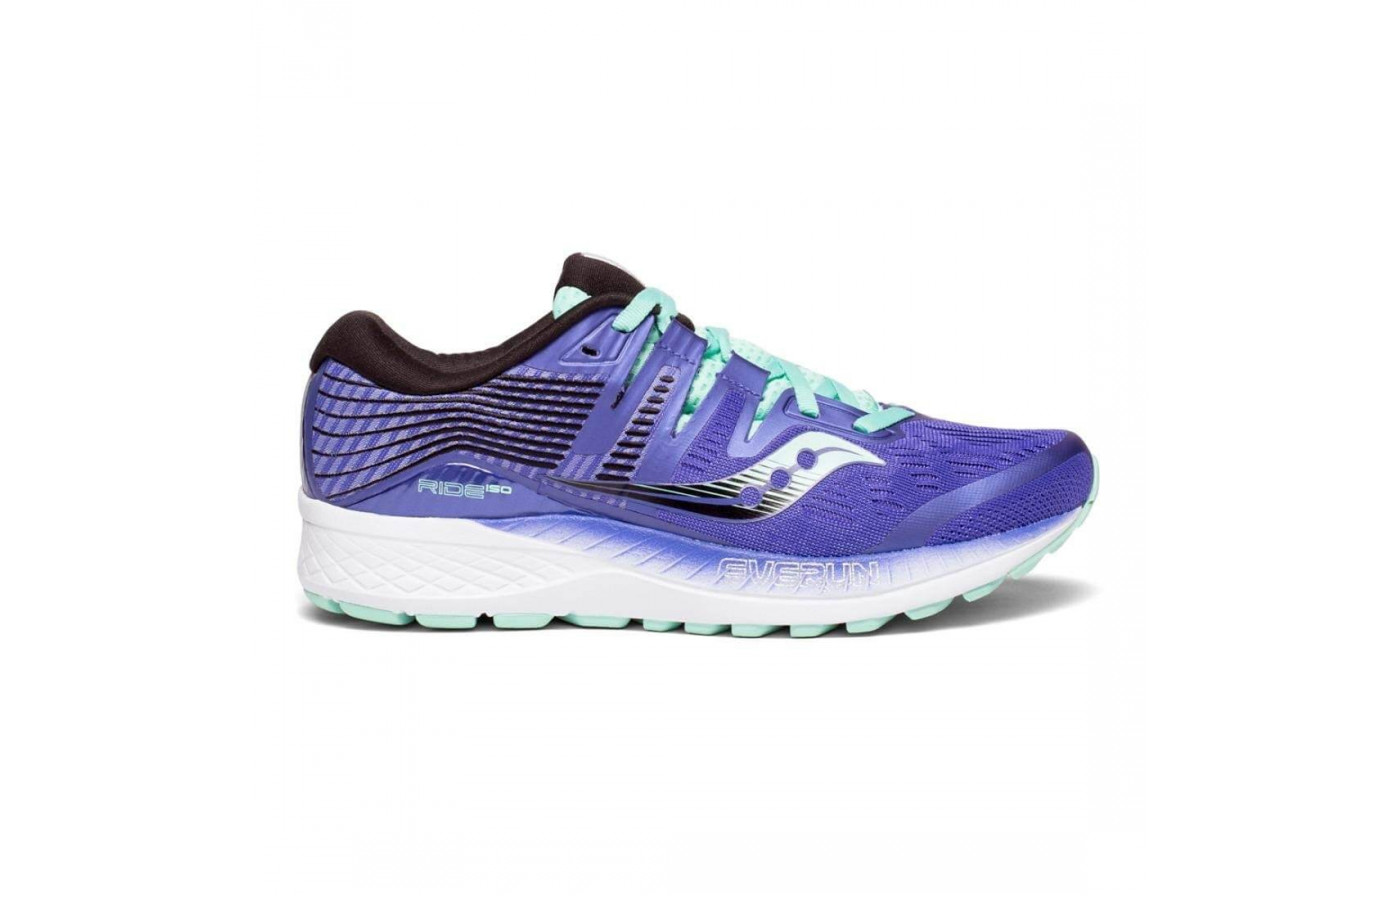 The Saucony Ride ISO has an EVERUN midsole top layer